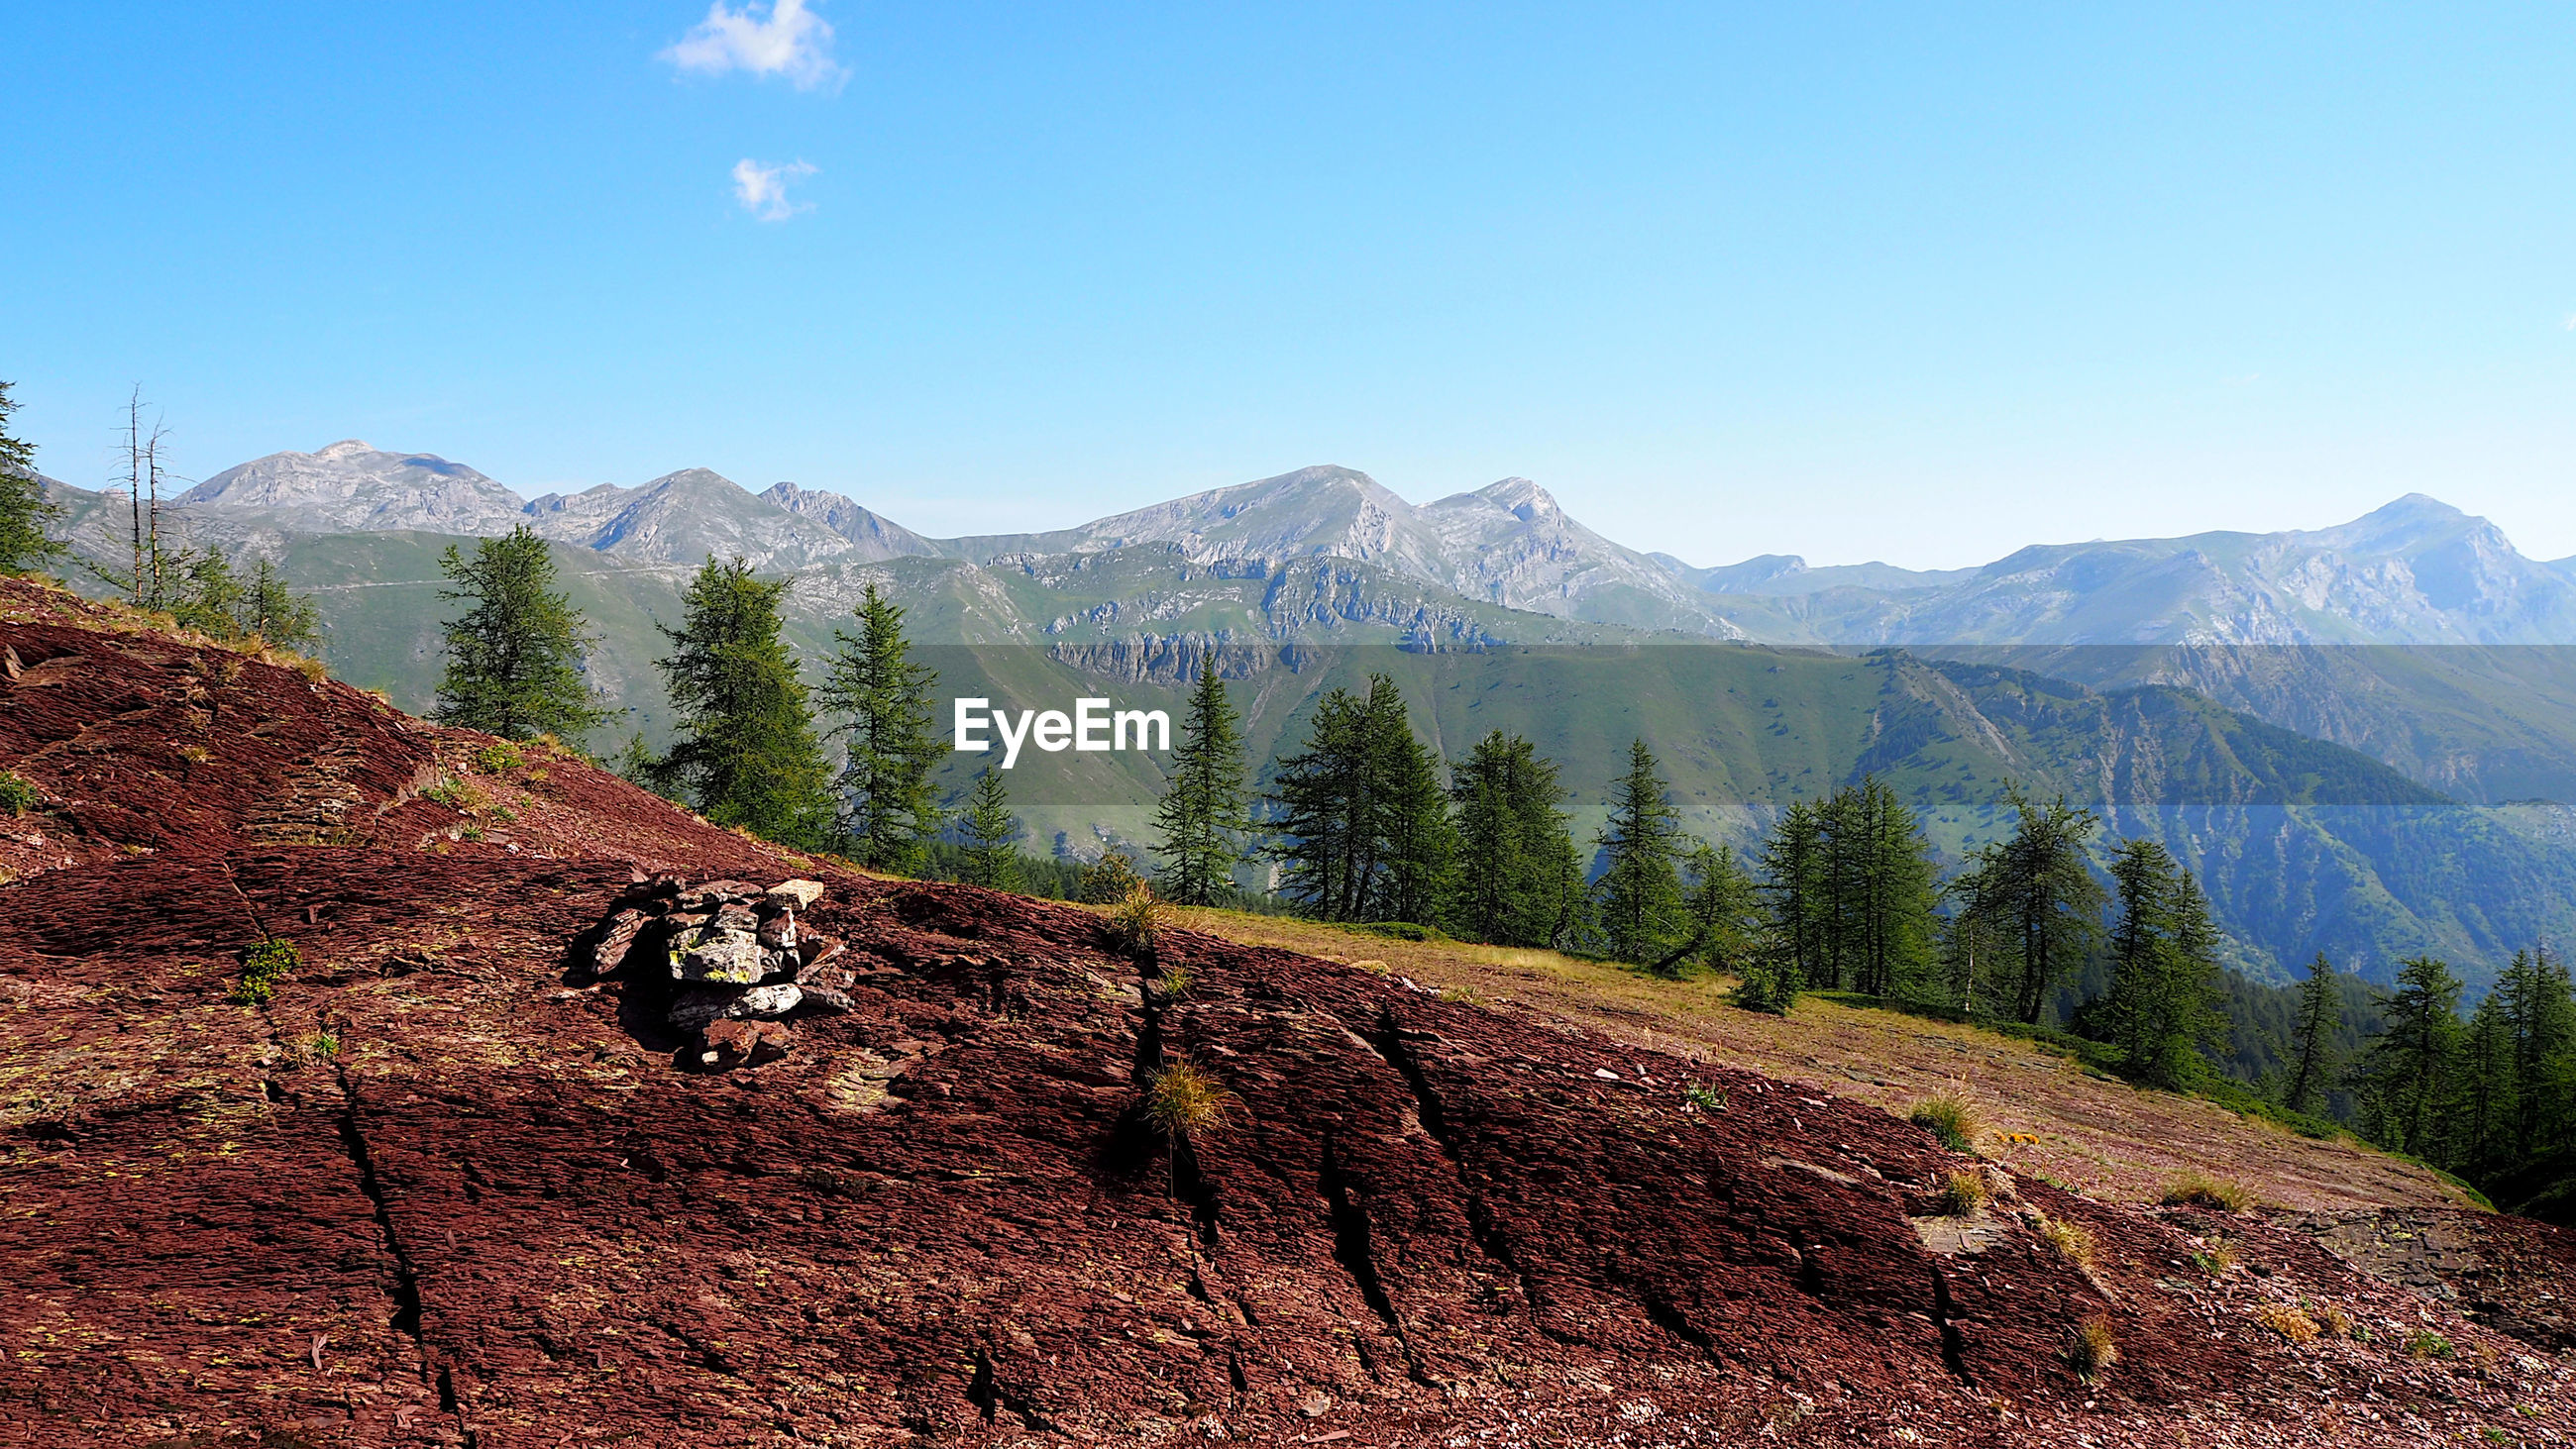 Scenic view of red land and  mountains against clear blue sky